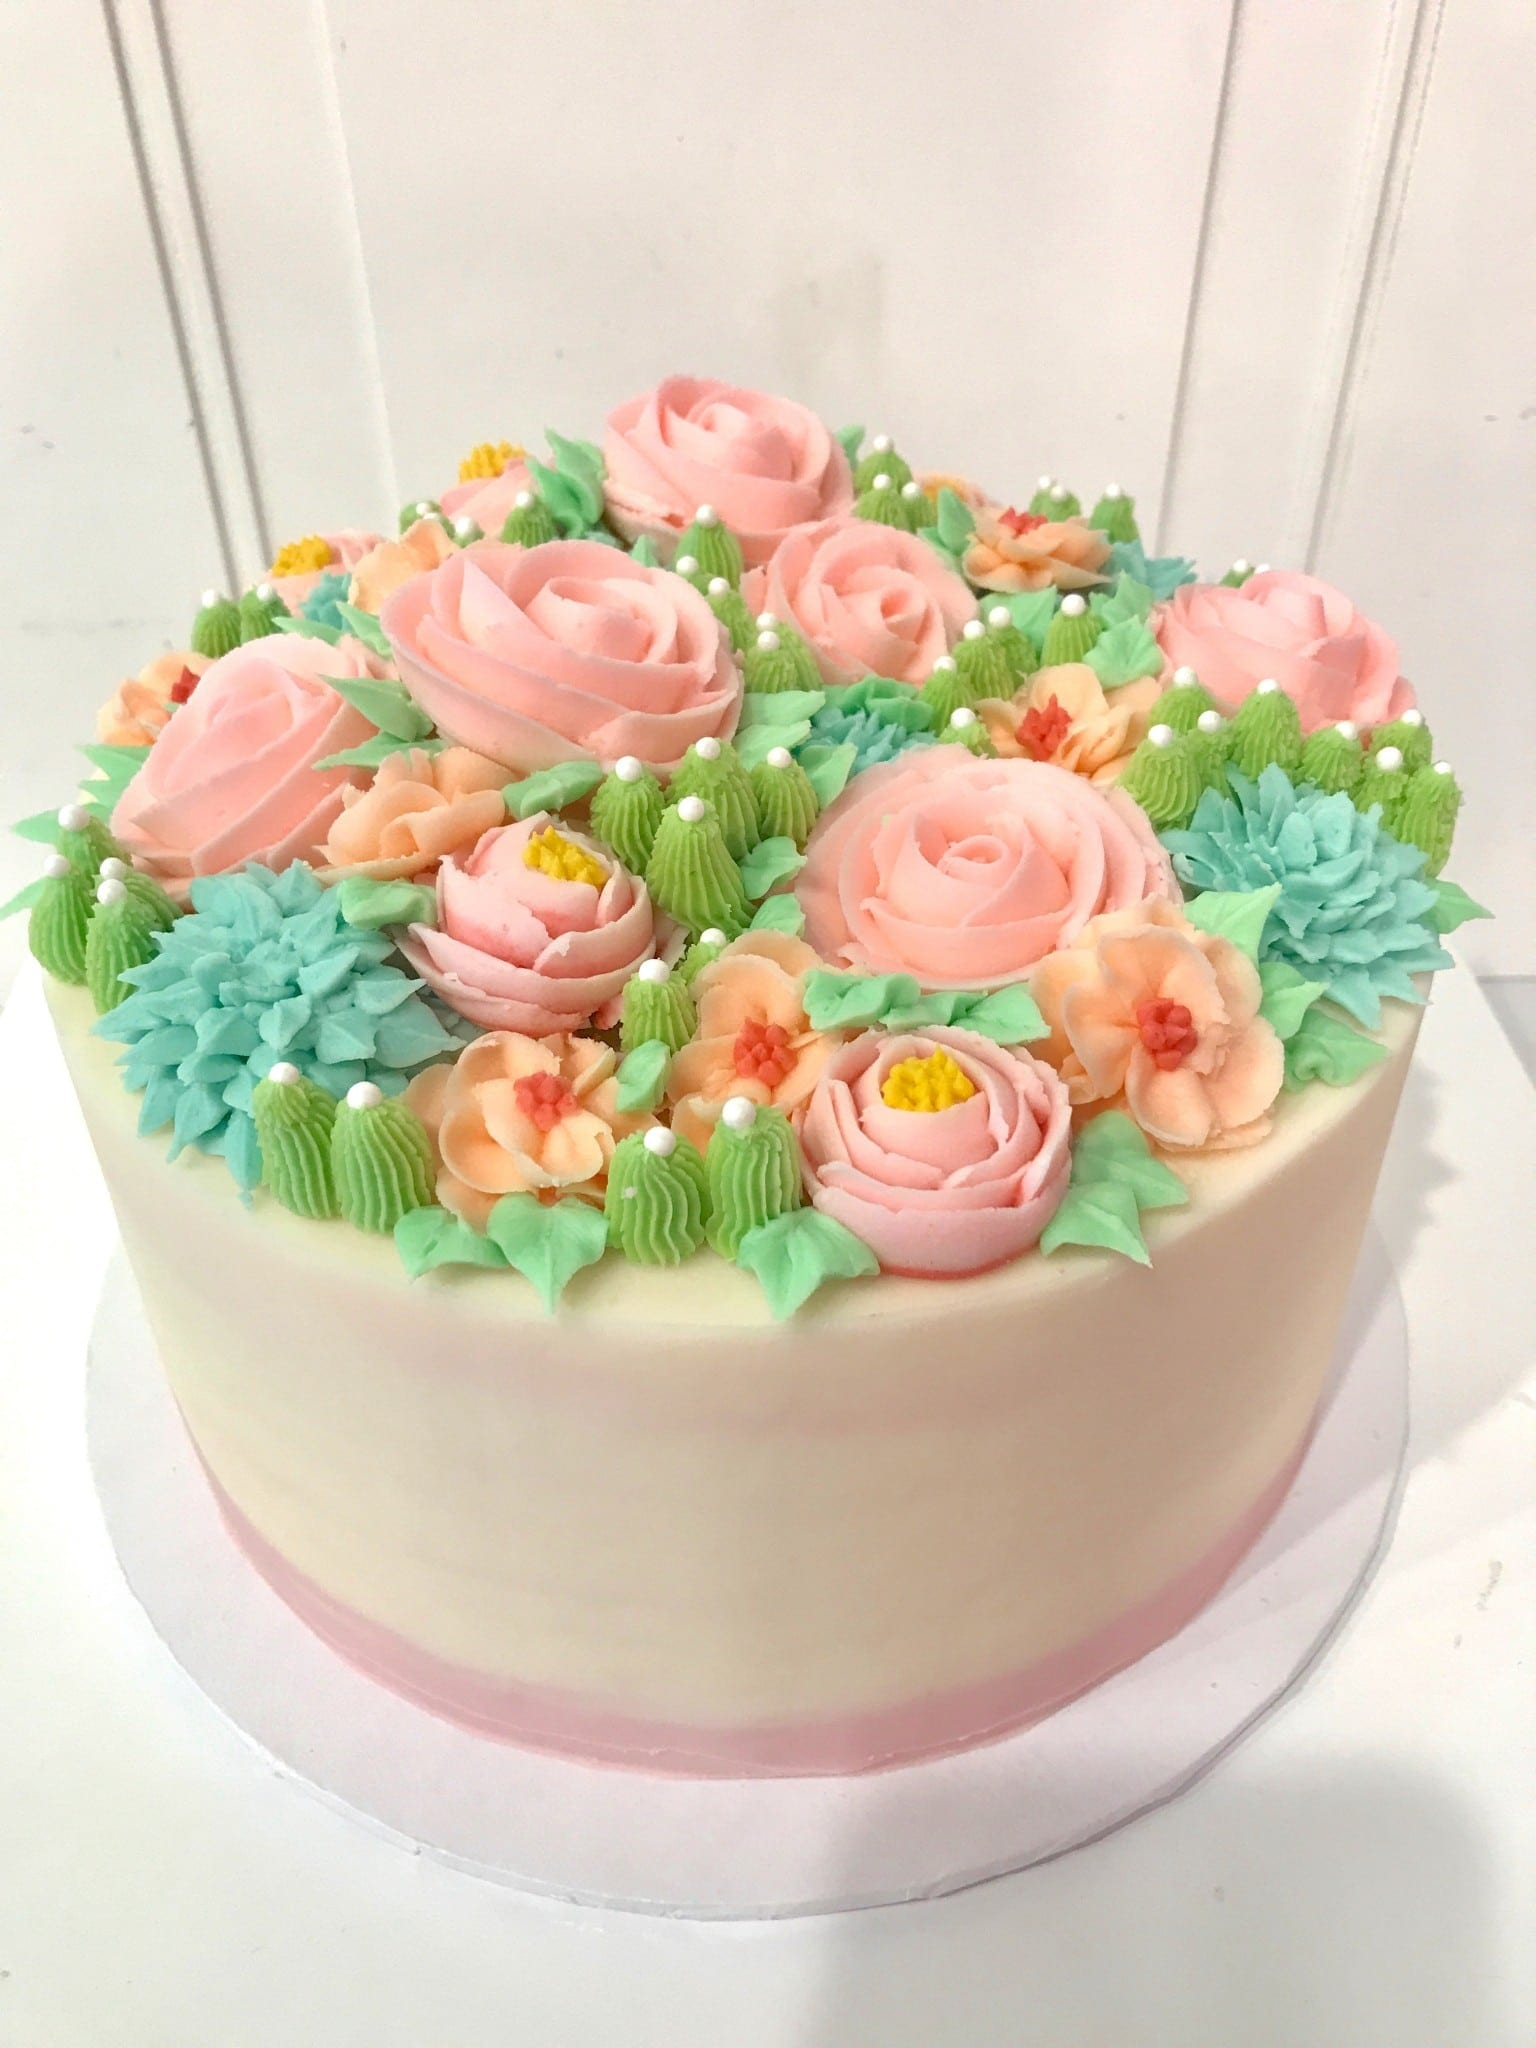 Pastel Cake with Flowers and | 3 Sweet Girls Cakery